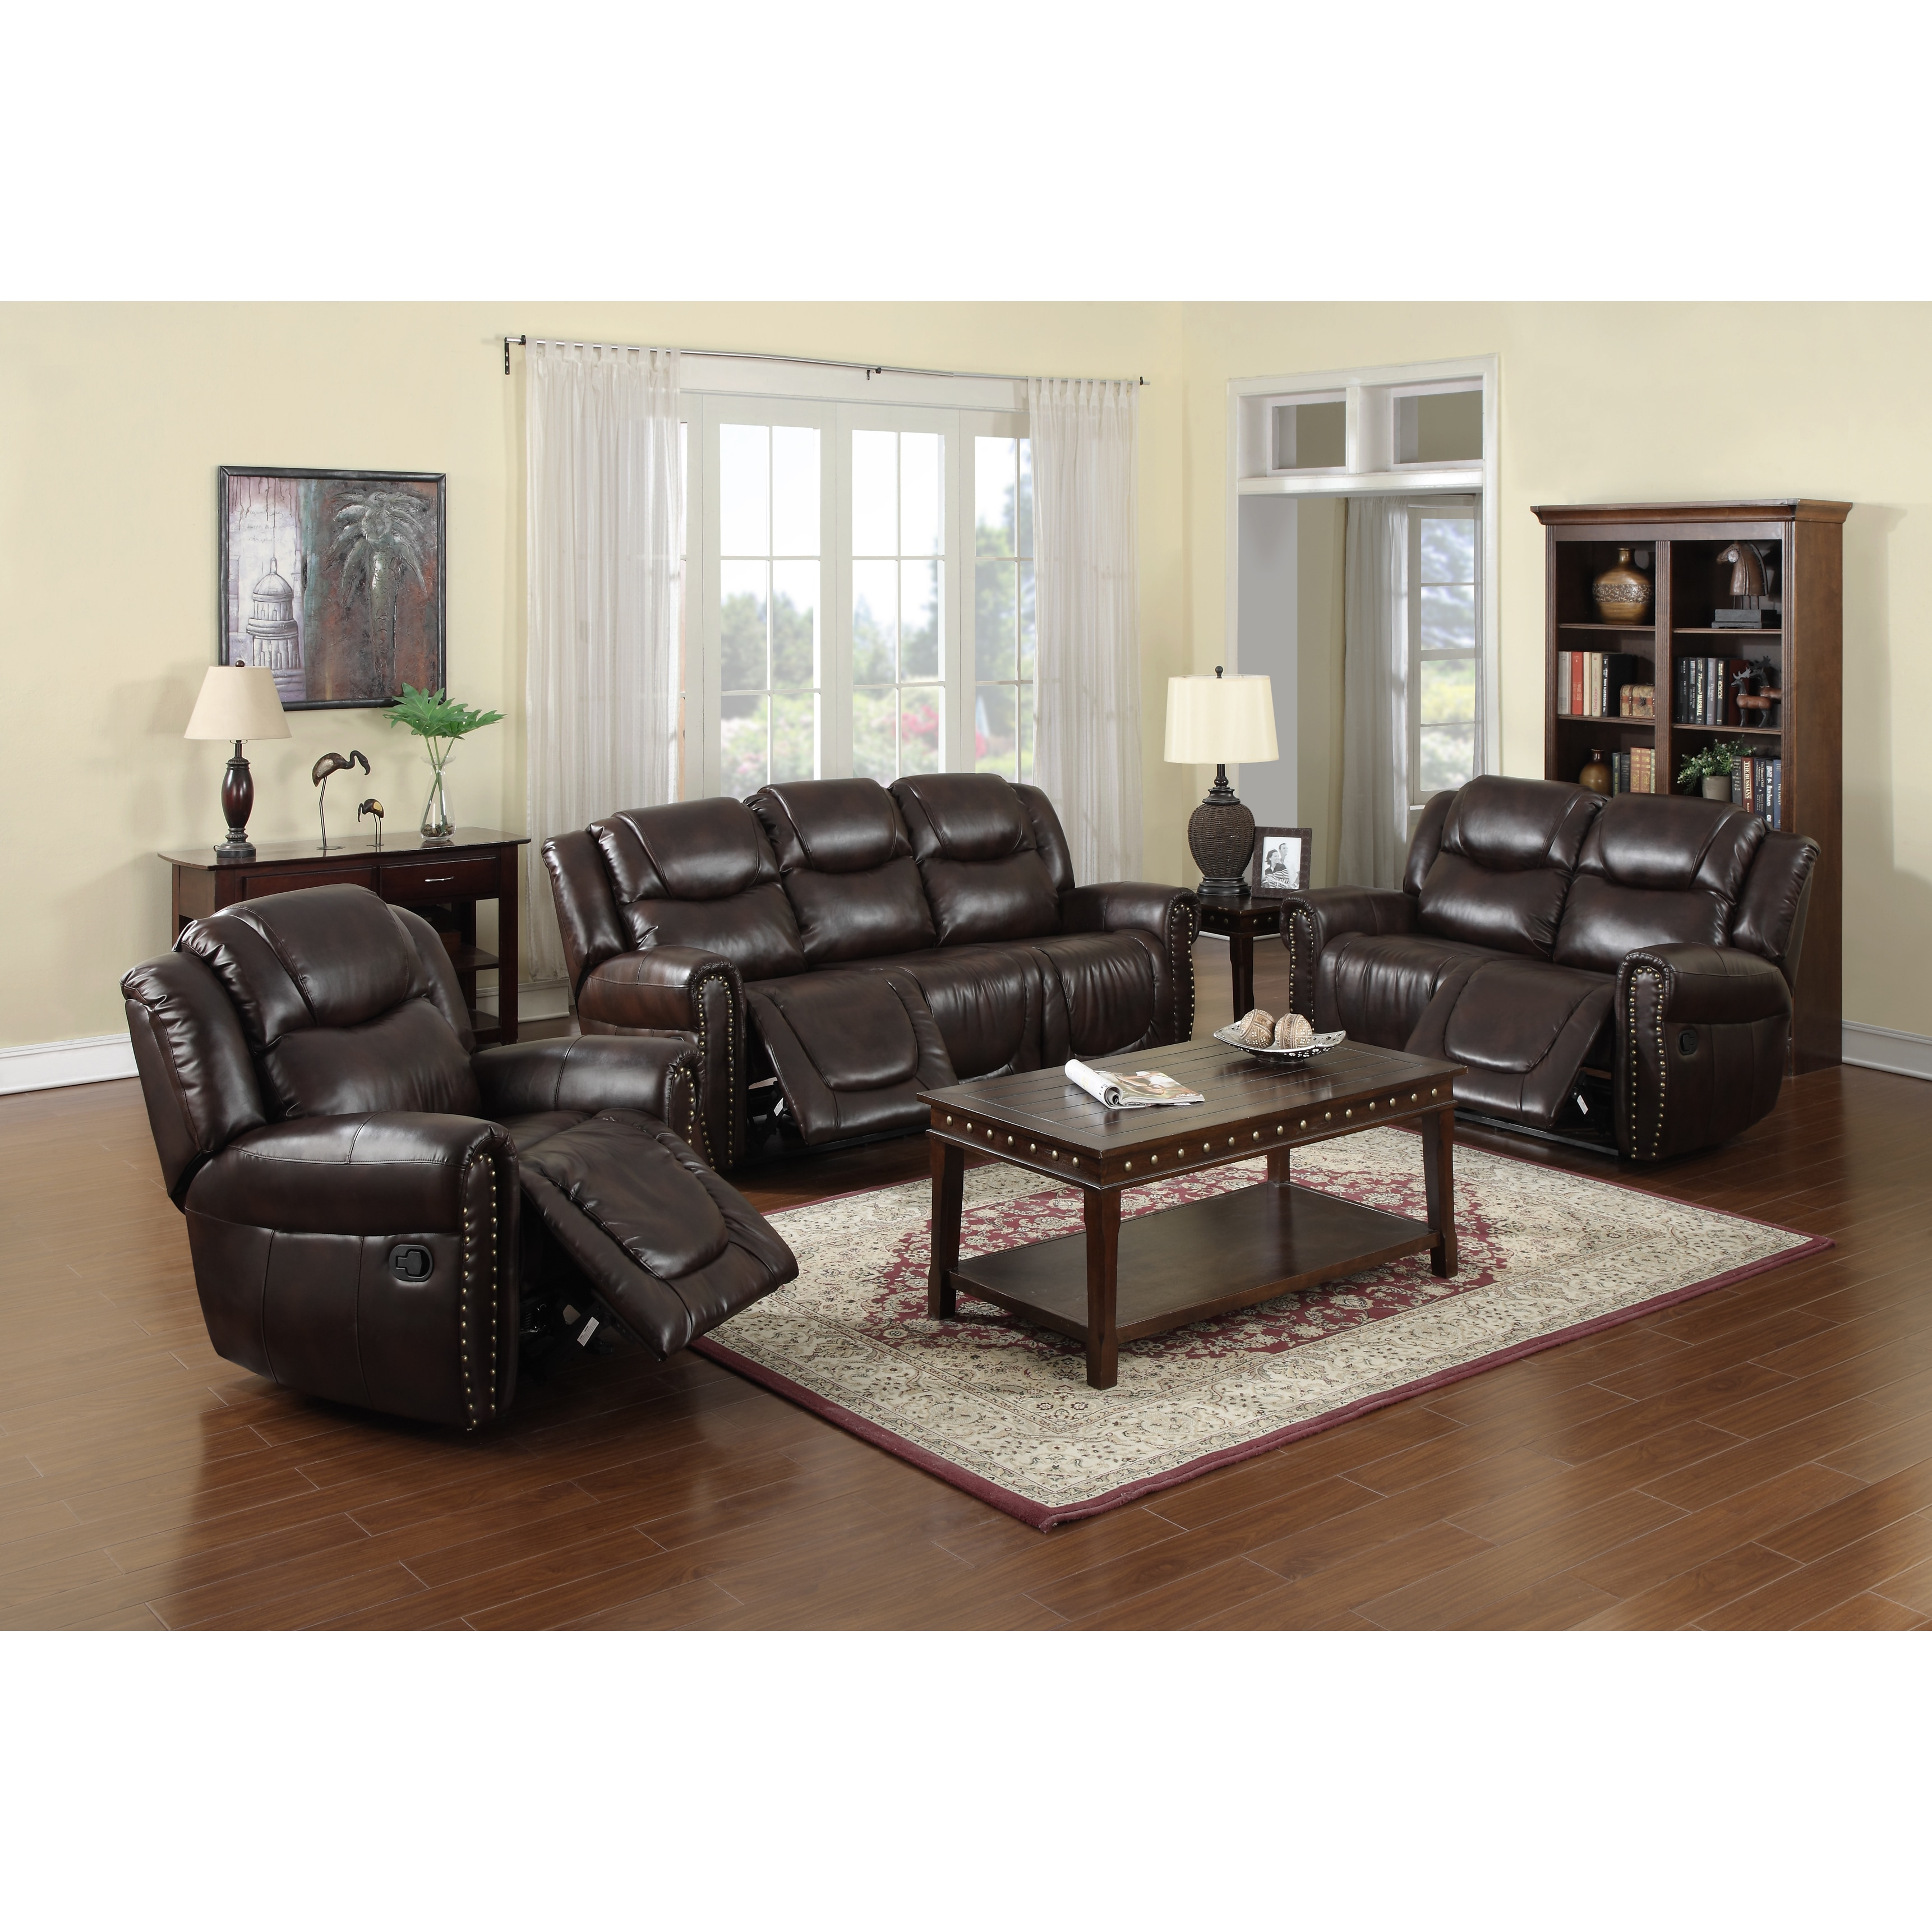 Outstanding Brighton Reclining Sofa Set Brown Gmtry Best Dining Table And Chair Ideas Images Gmtryco